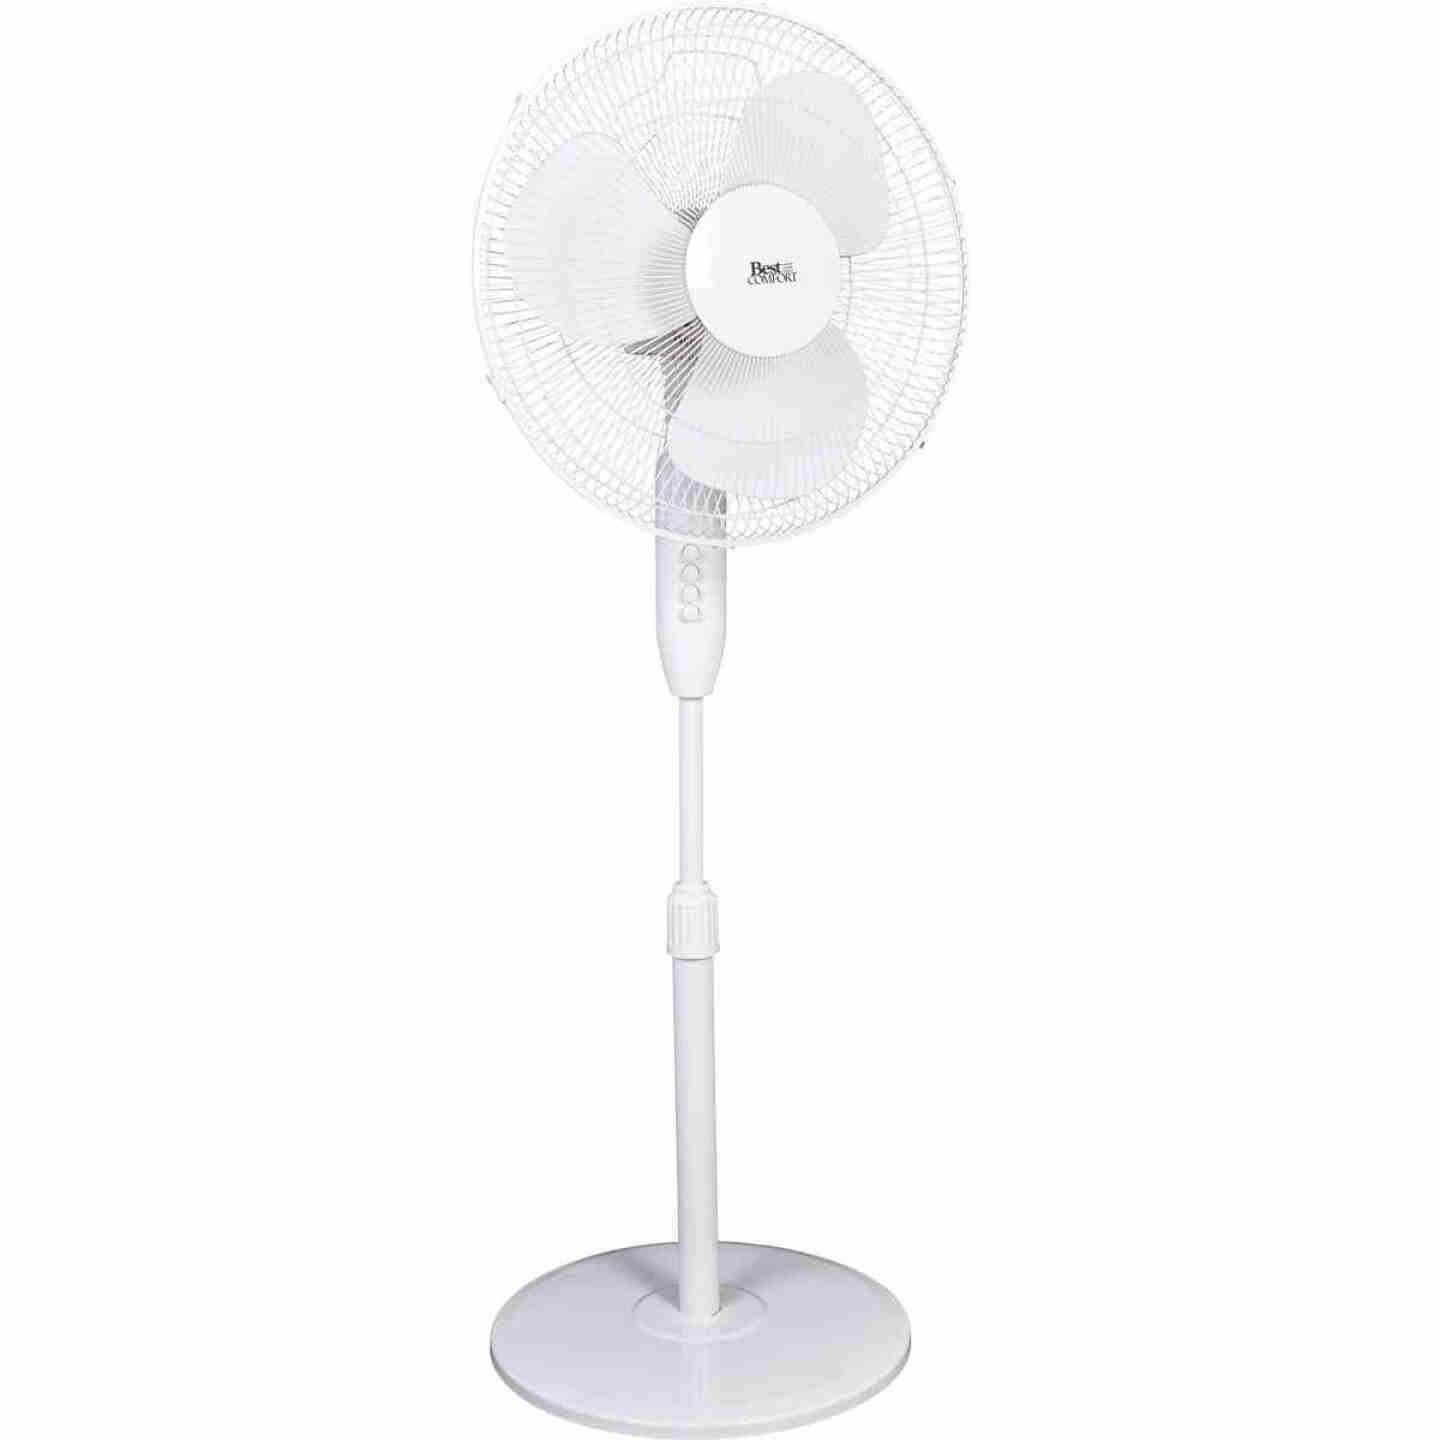 Best Comfort 16 In. 3-Speed Extends to 49 In. H. White Oscillating Pedestal Fan Image 1